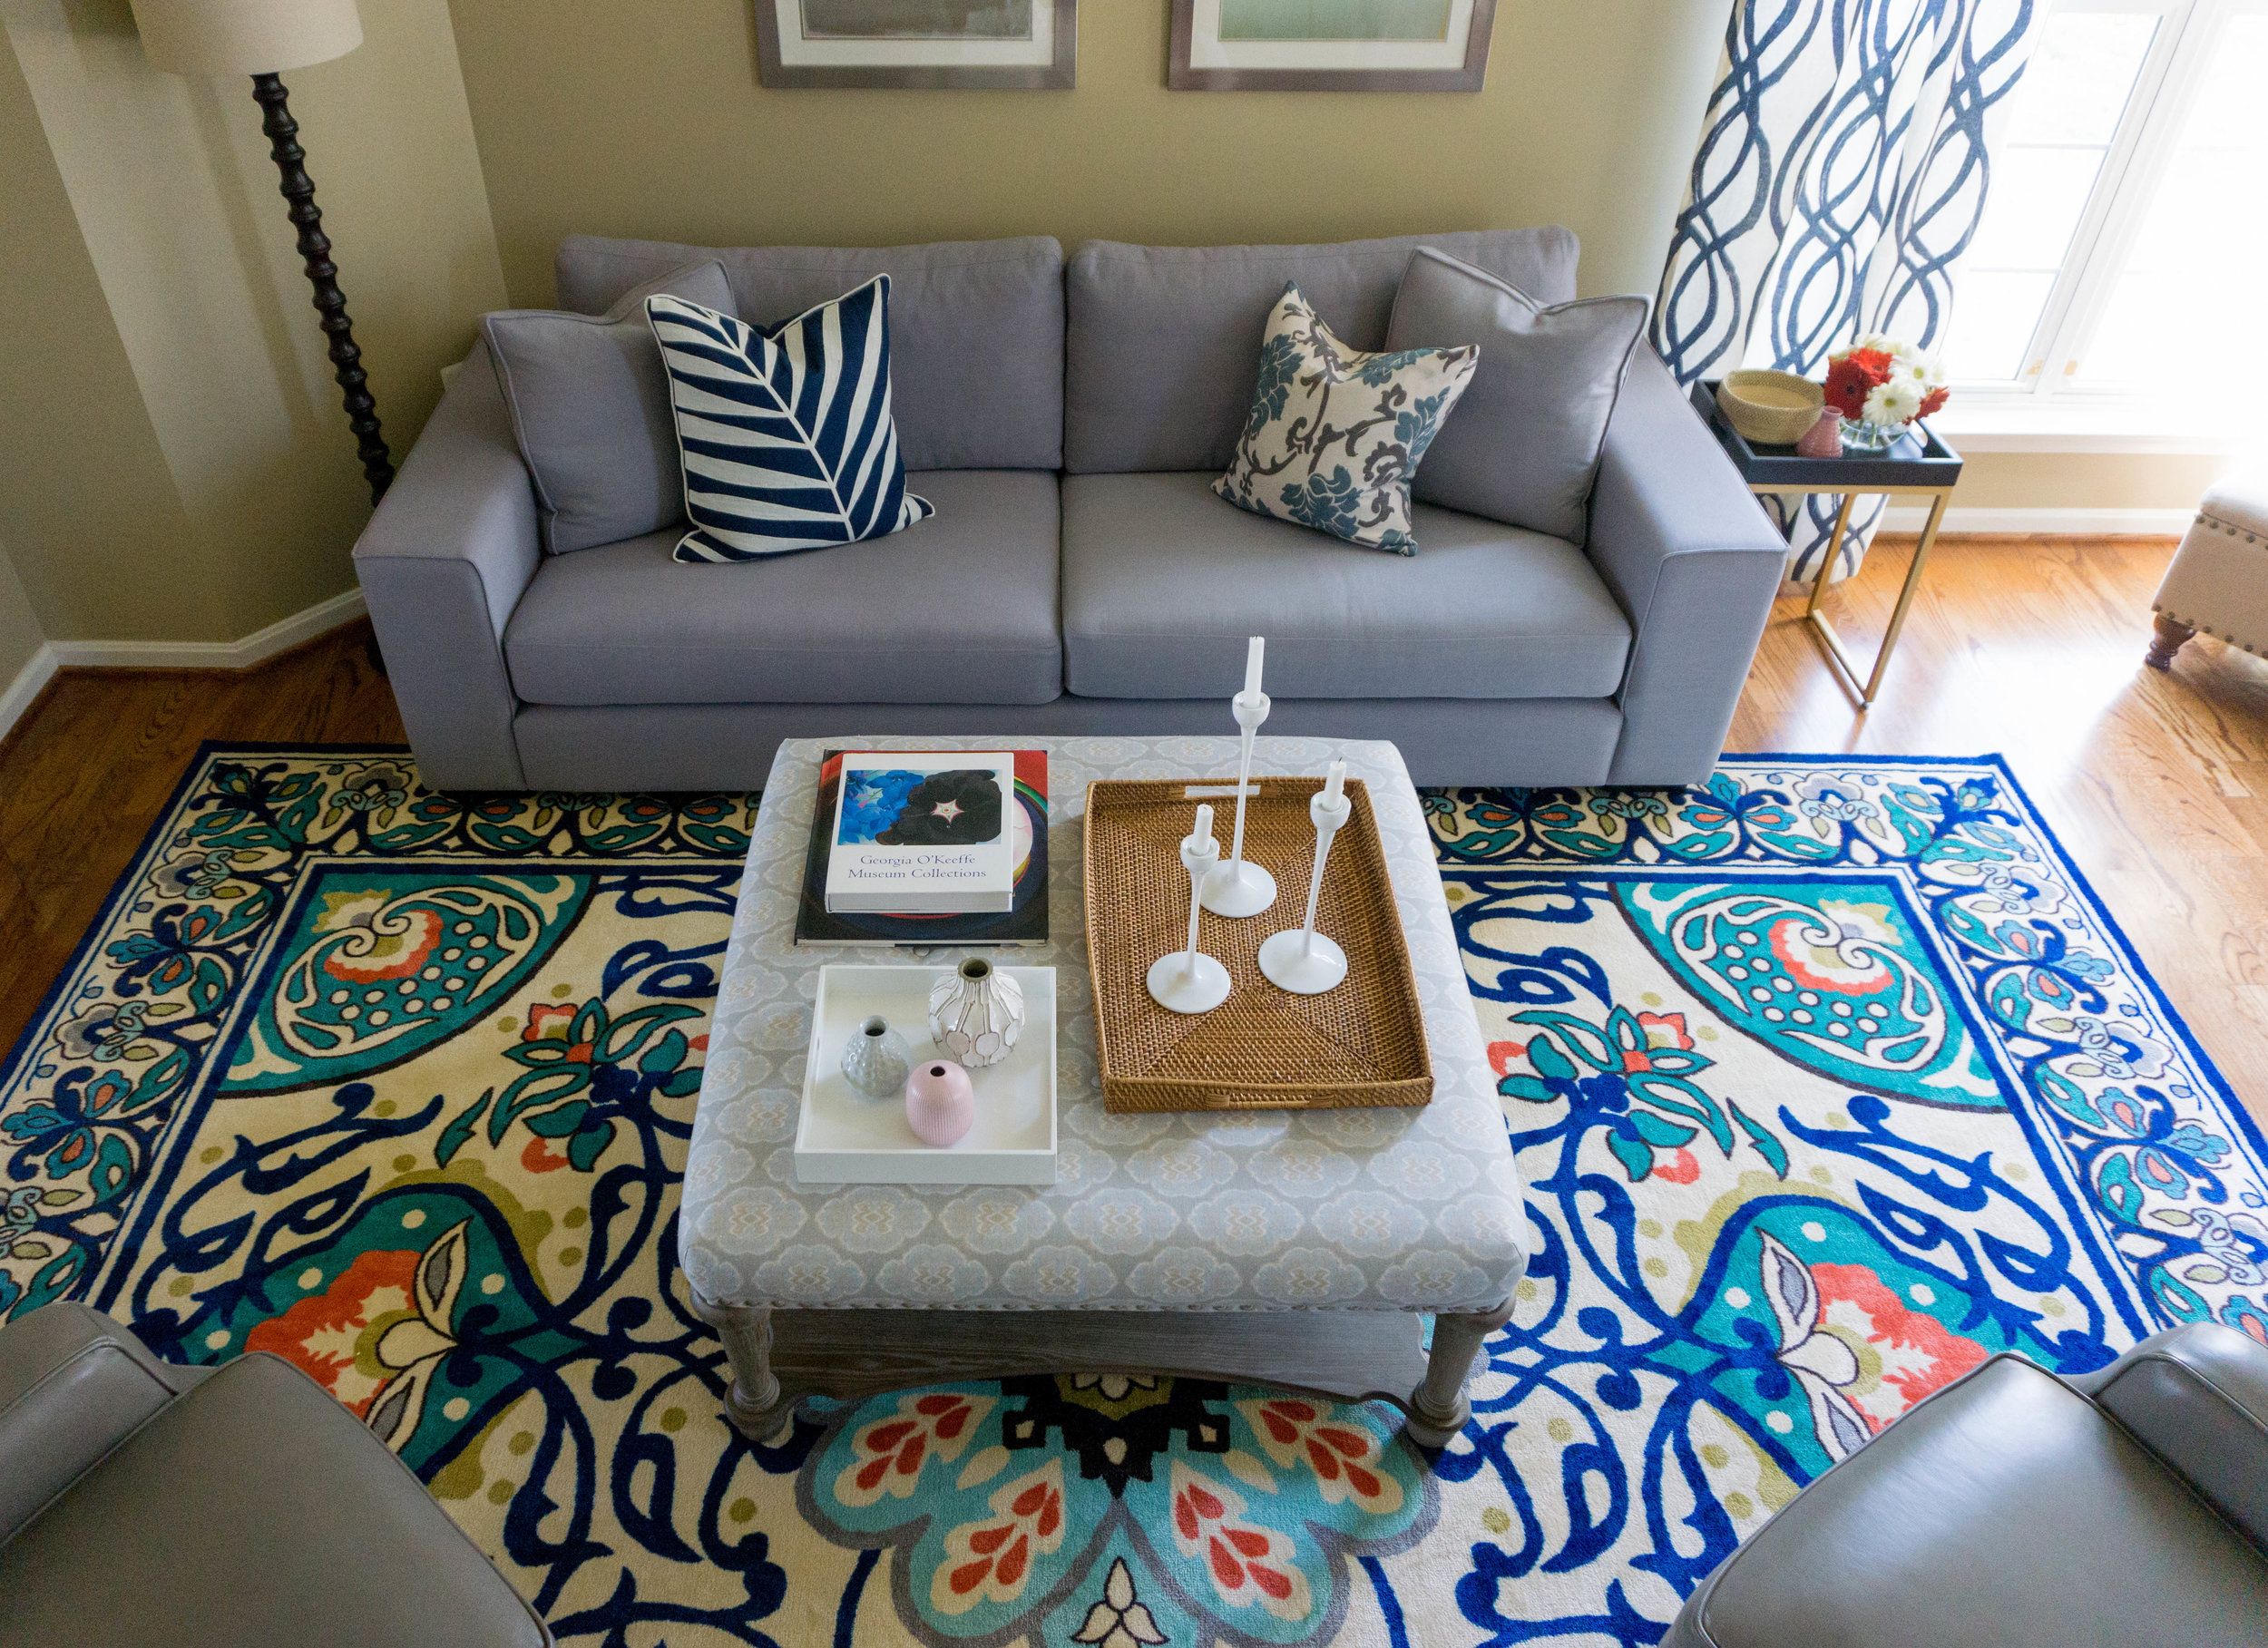 My client was not afraid of a bold, statement rug paired with a variety of patterns and textures.